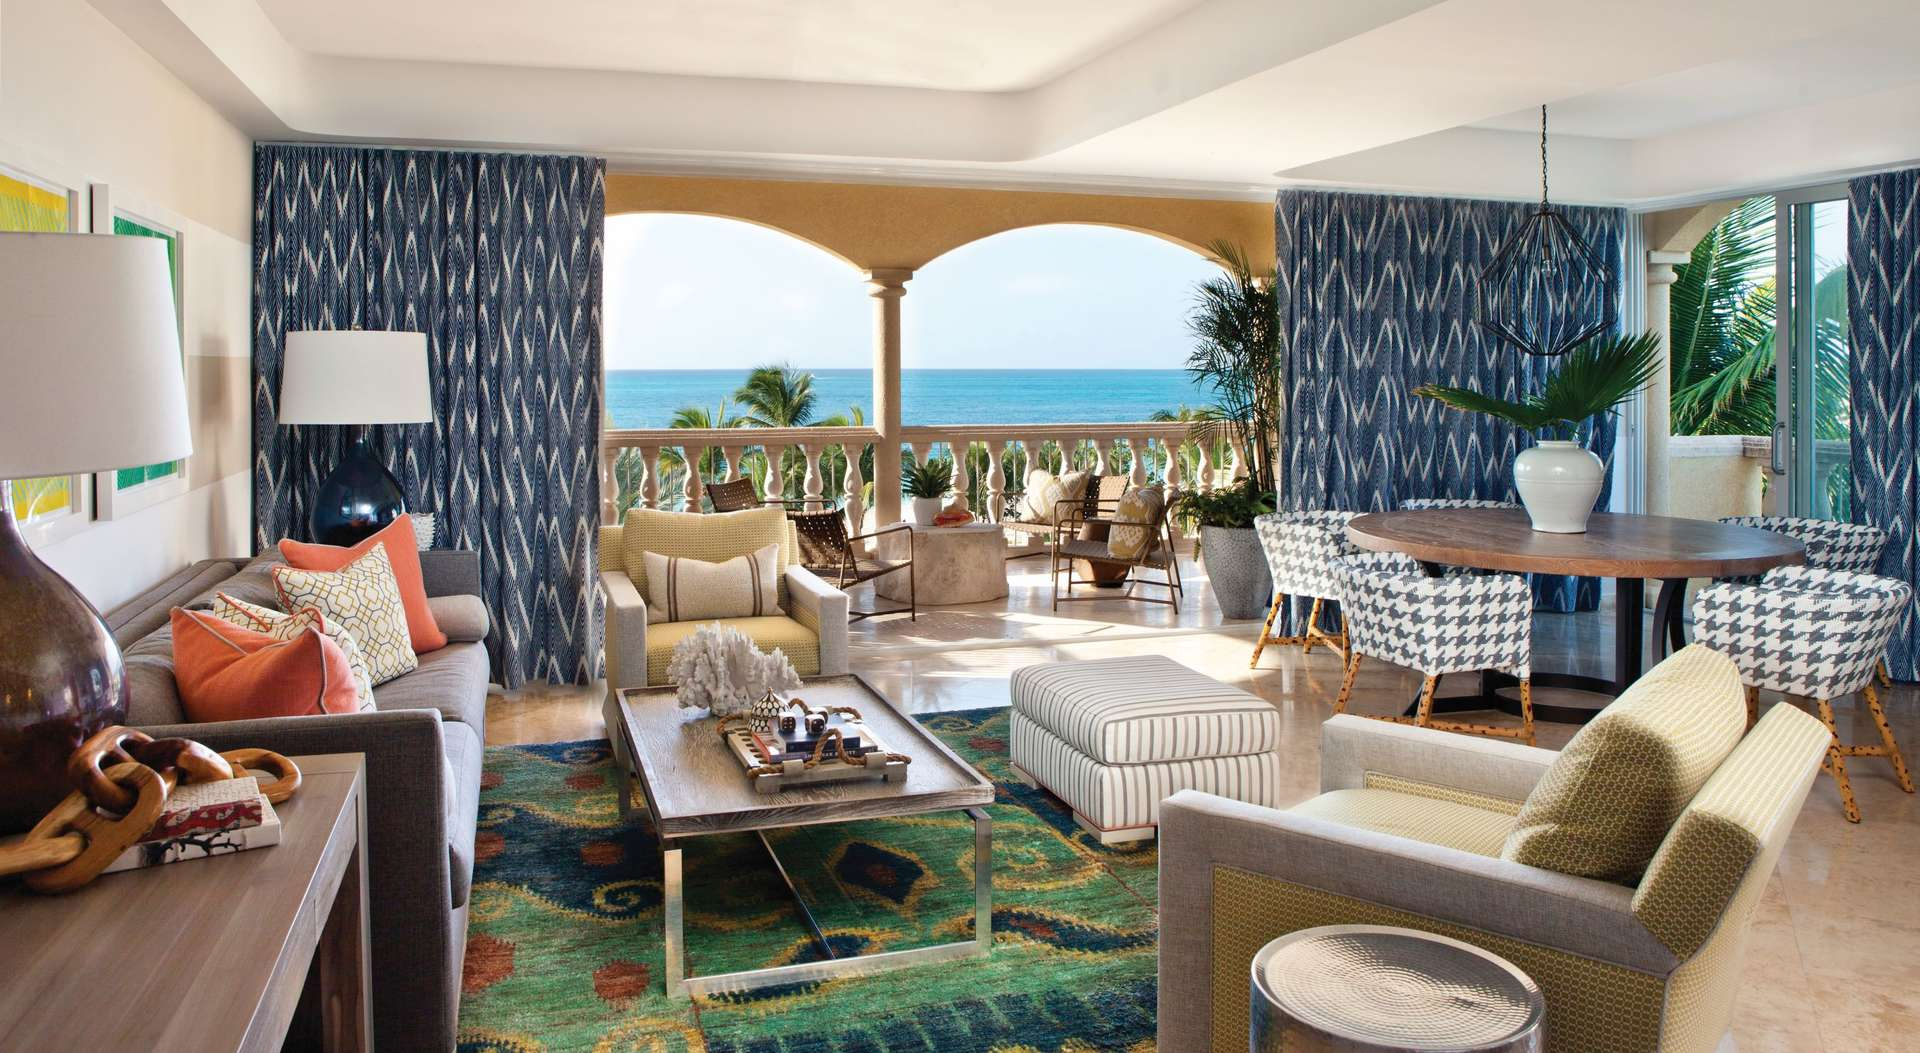 Luxury villa rentals caribbean - Turks and caicos - Providenciales - Grace bay club - Luxury 2 Bedroom Suite | Villas Suites - Image 1/8